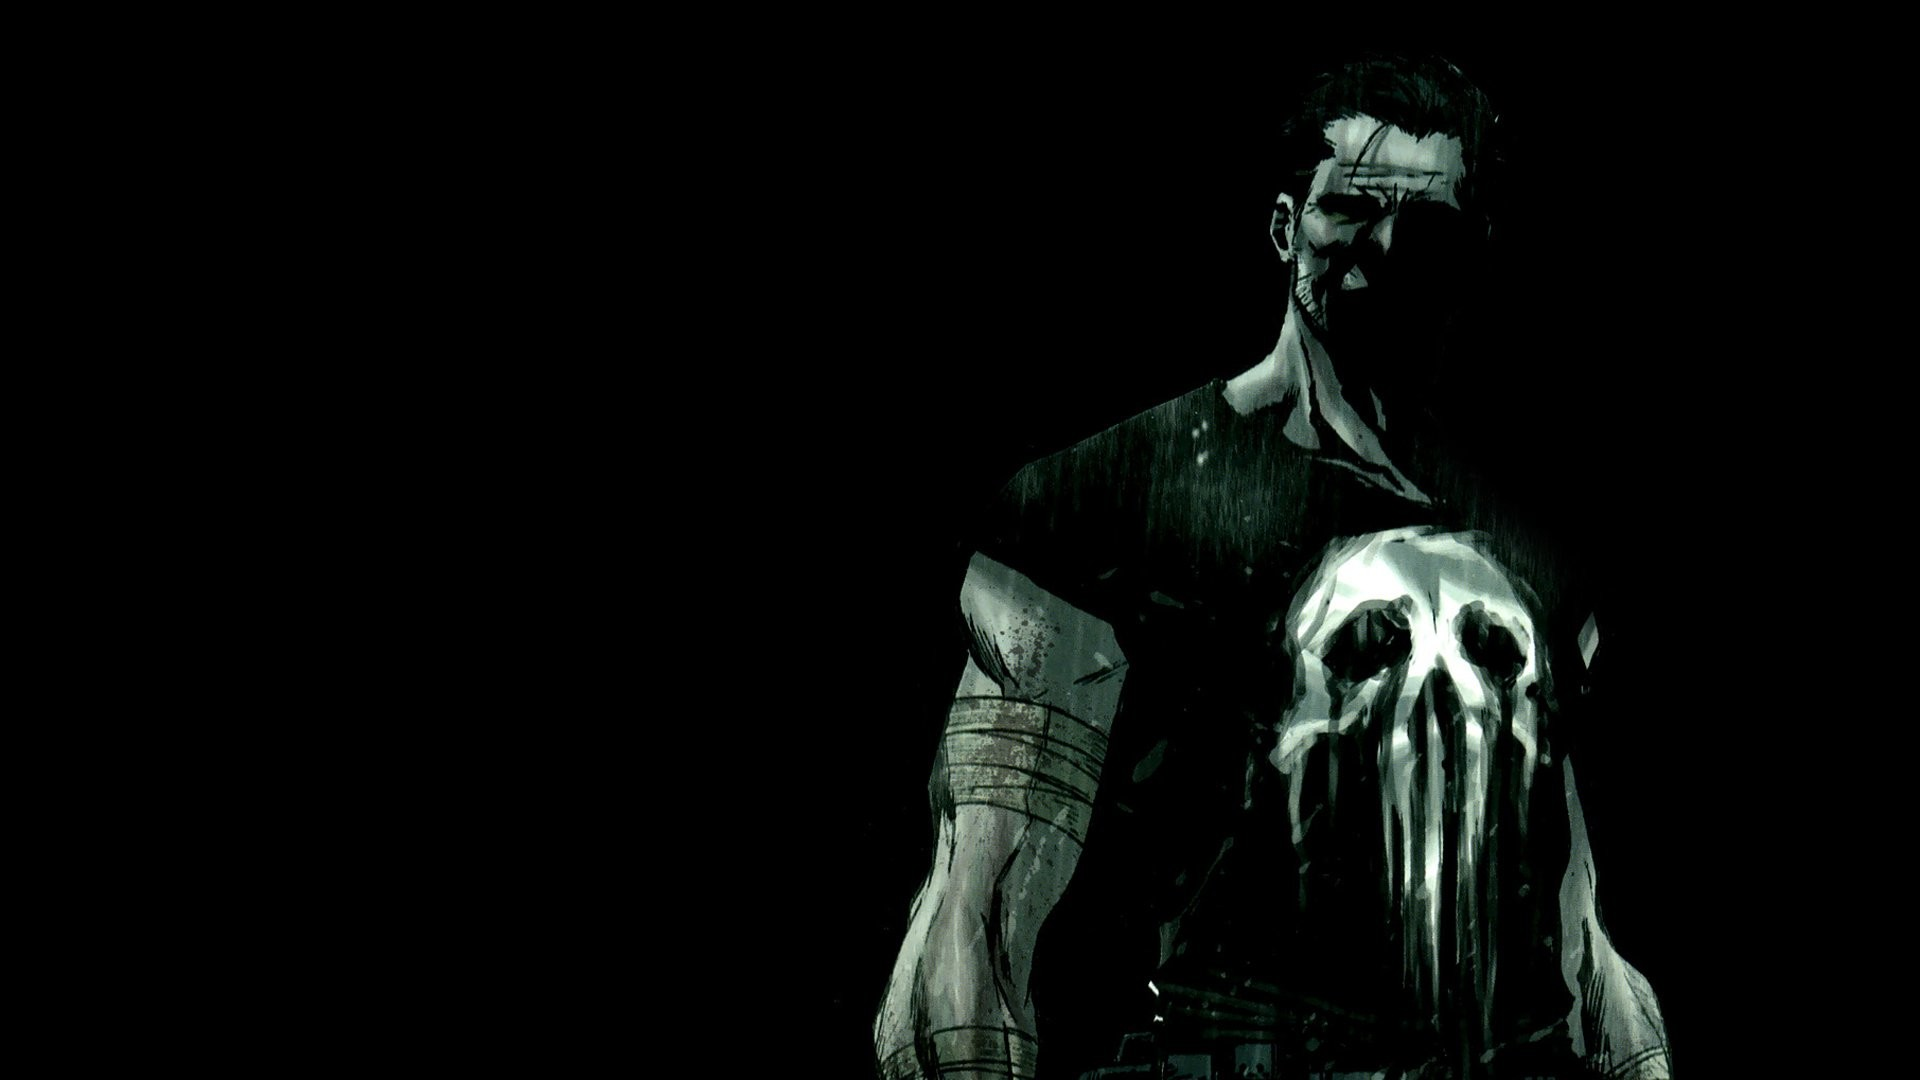 1920x1080 Comics The Punisher Frank Castle Punisher Wallpaper